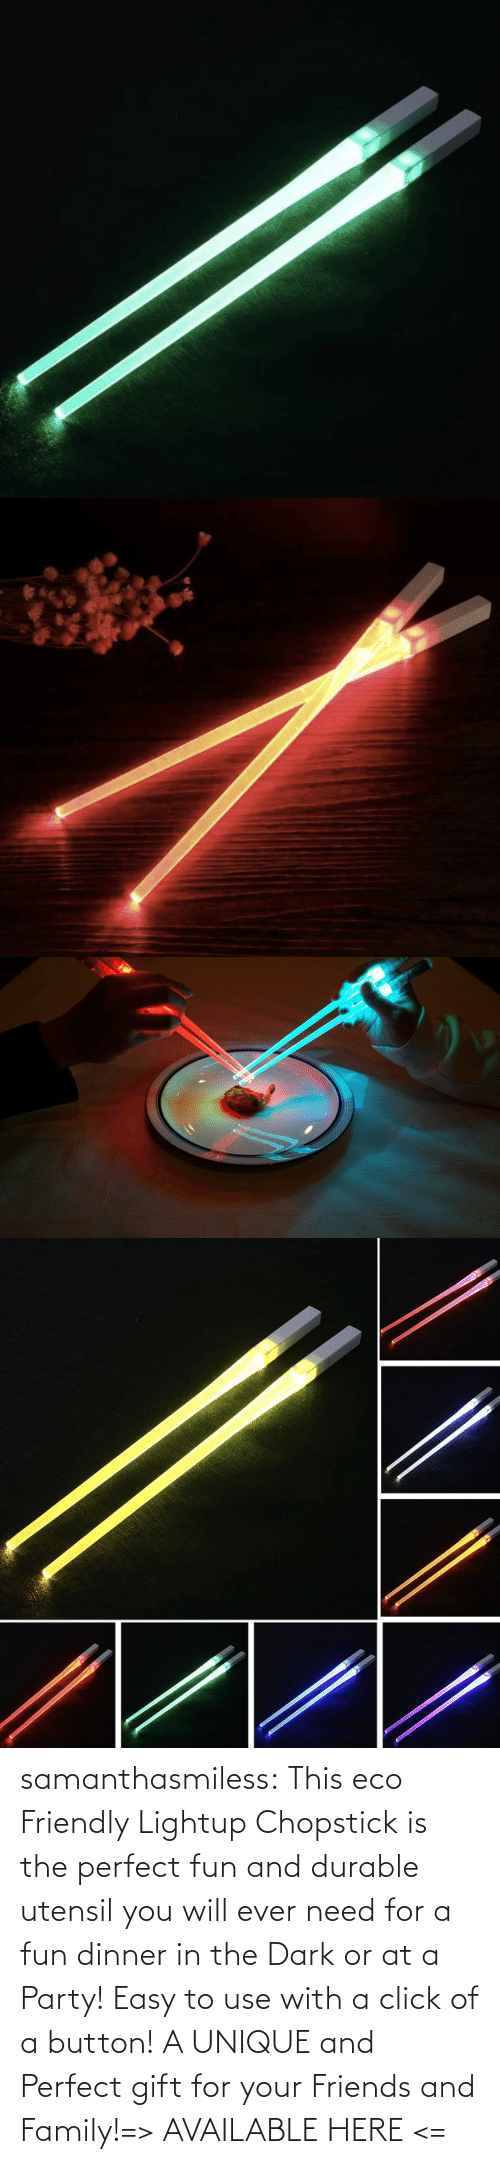 products: samanthasmiless:  This eco Friendly Lightup Chopstick is the perfect fun and durable utensil you will ever need for a fun dinner in the Dark or at a Party! Easy to use with a click of a button! A UNIQUE and Perfect gift for your Friends and Family!=> AVAILABLE HERE <=